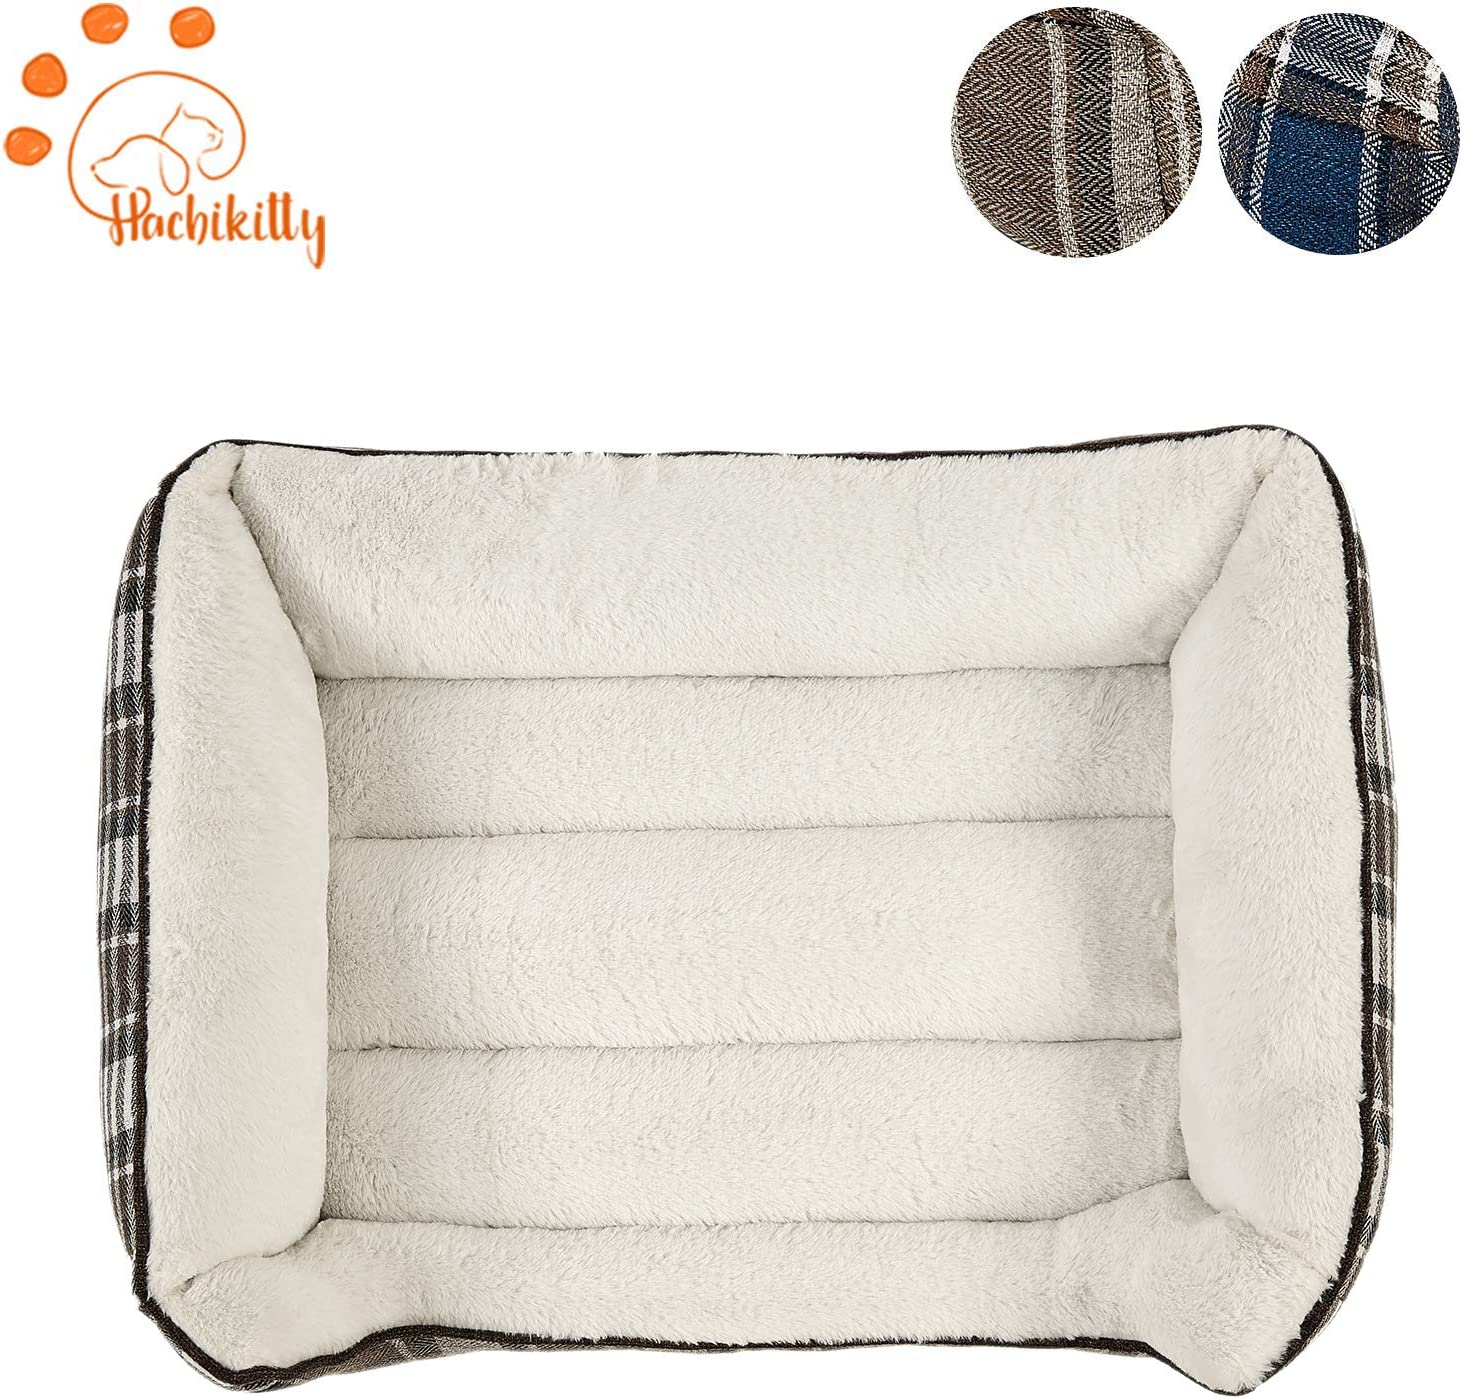 HACHIKITTY Durable Dog Bed Machine Washable Medium Size Puppy Bed, Comfortable Medium Pet Bed Plaid